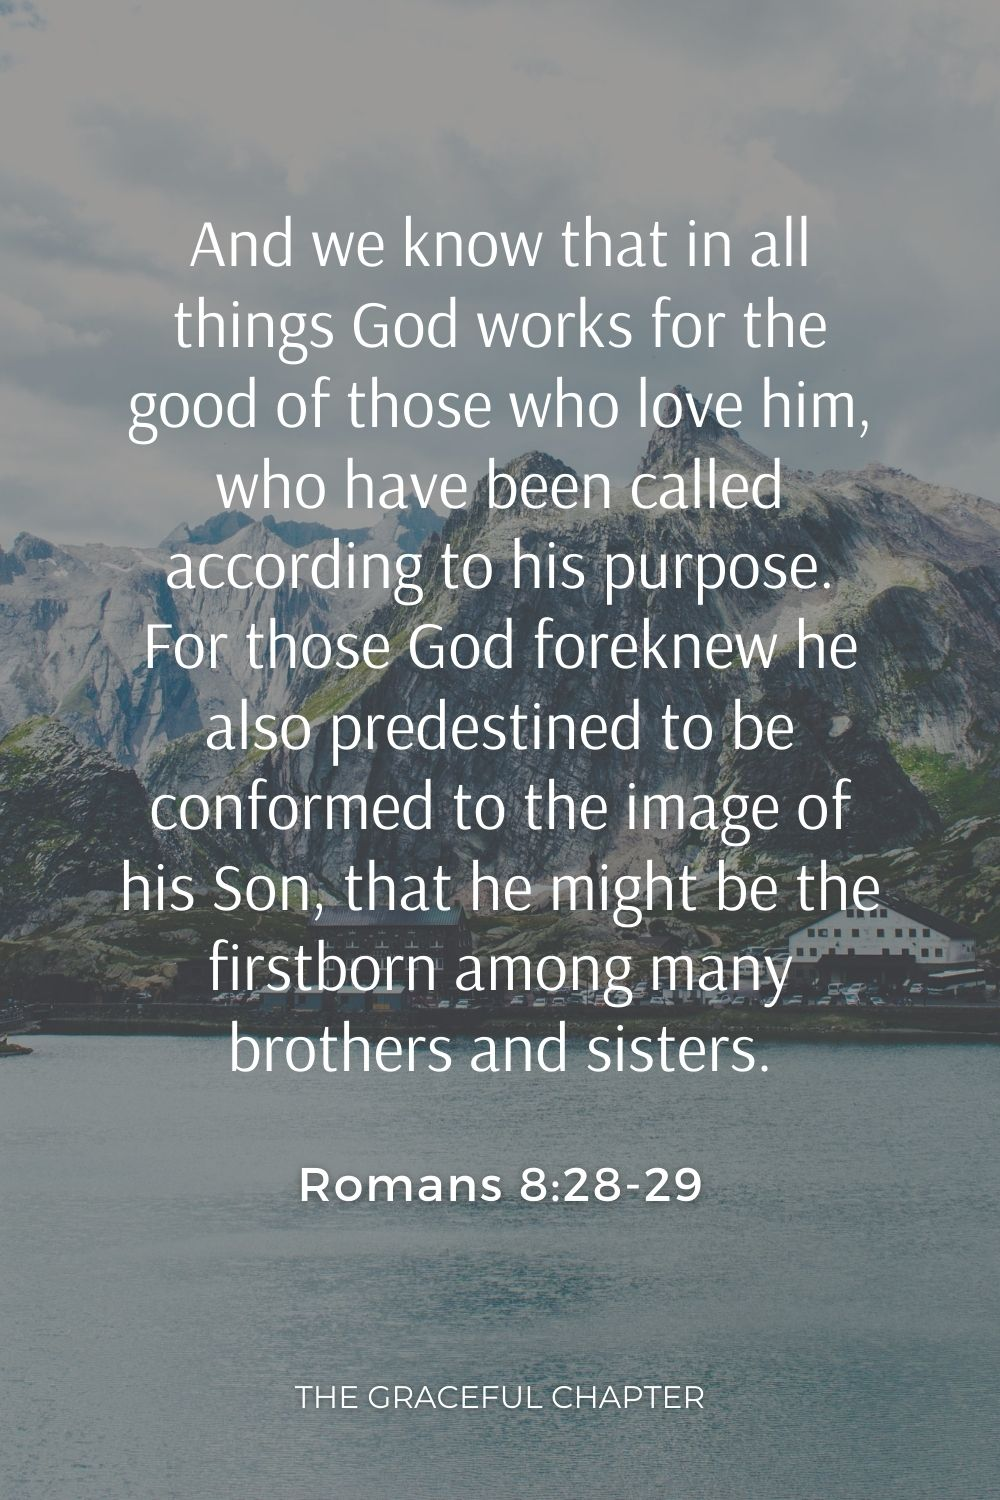 And we know that in all things God works for the good of those who love him, who have been called according to his purpose. For those God foreknew he also predestined to be conformed to the image of his Son, that he might be the firstborn among many brothers and sisters. Romans 8:28-29